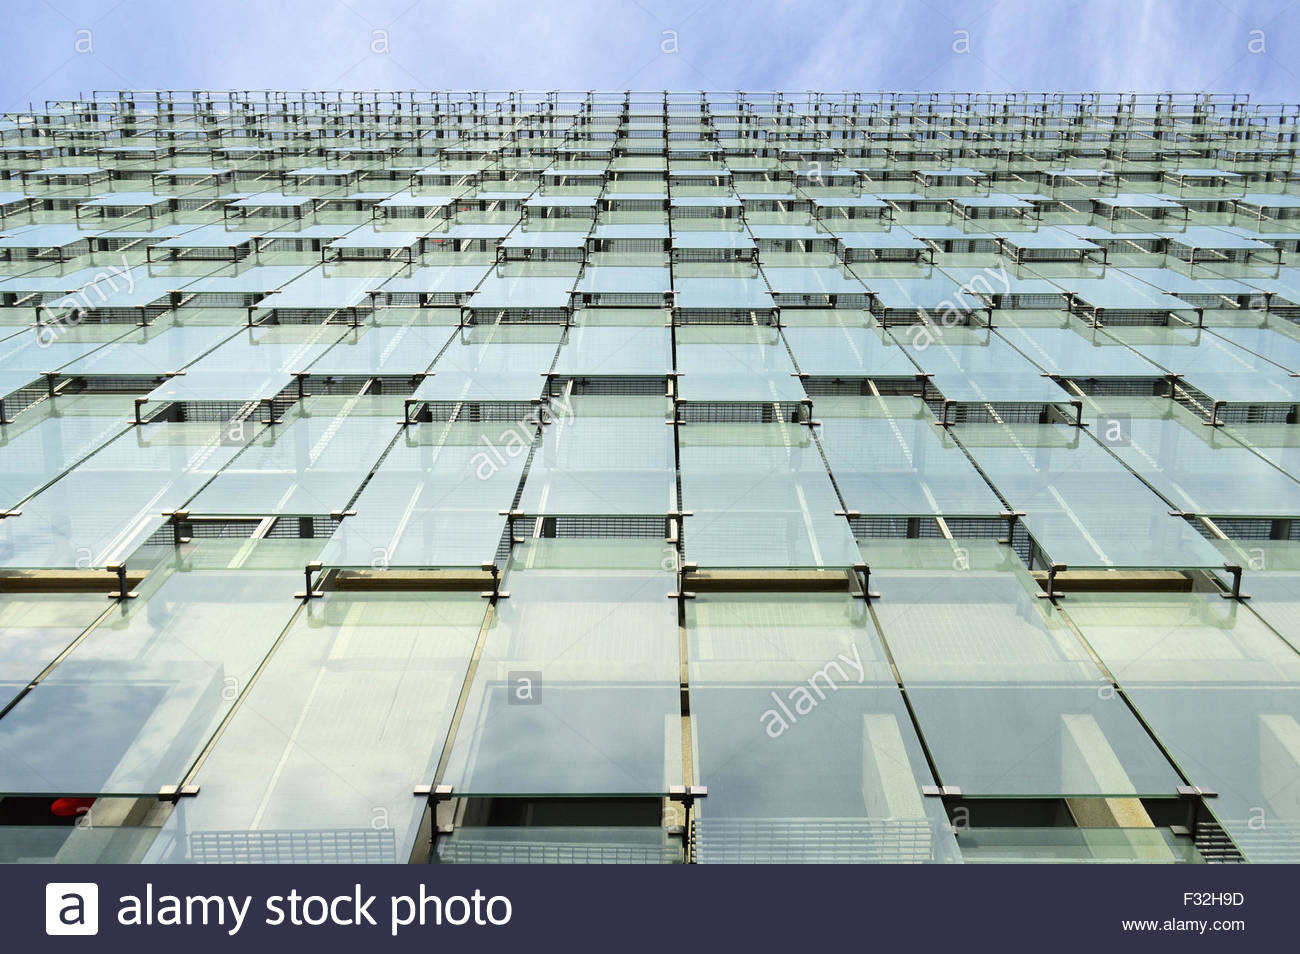 Glass Cladding Facades : Modern office building glass facade cladding low angle